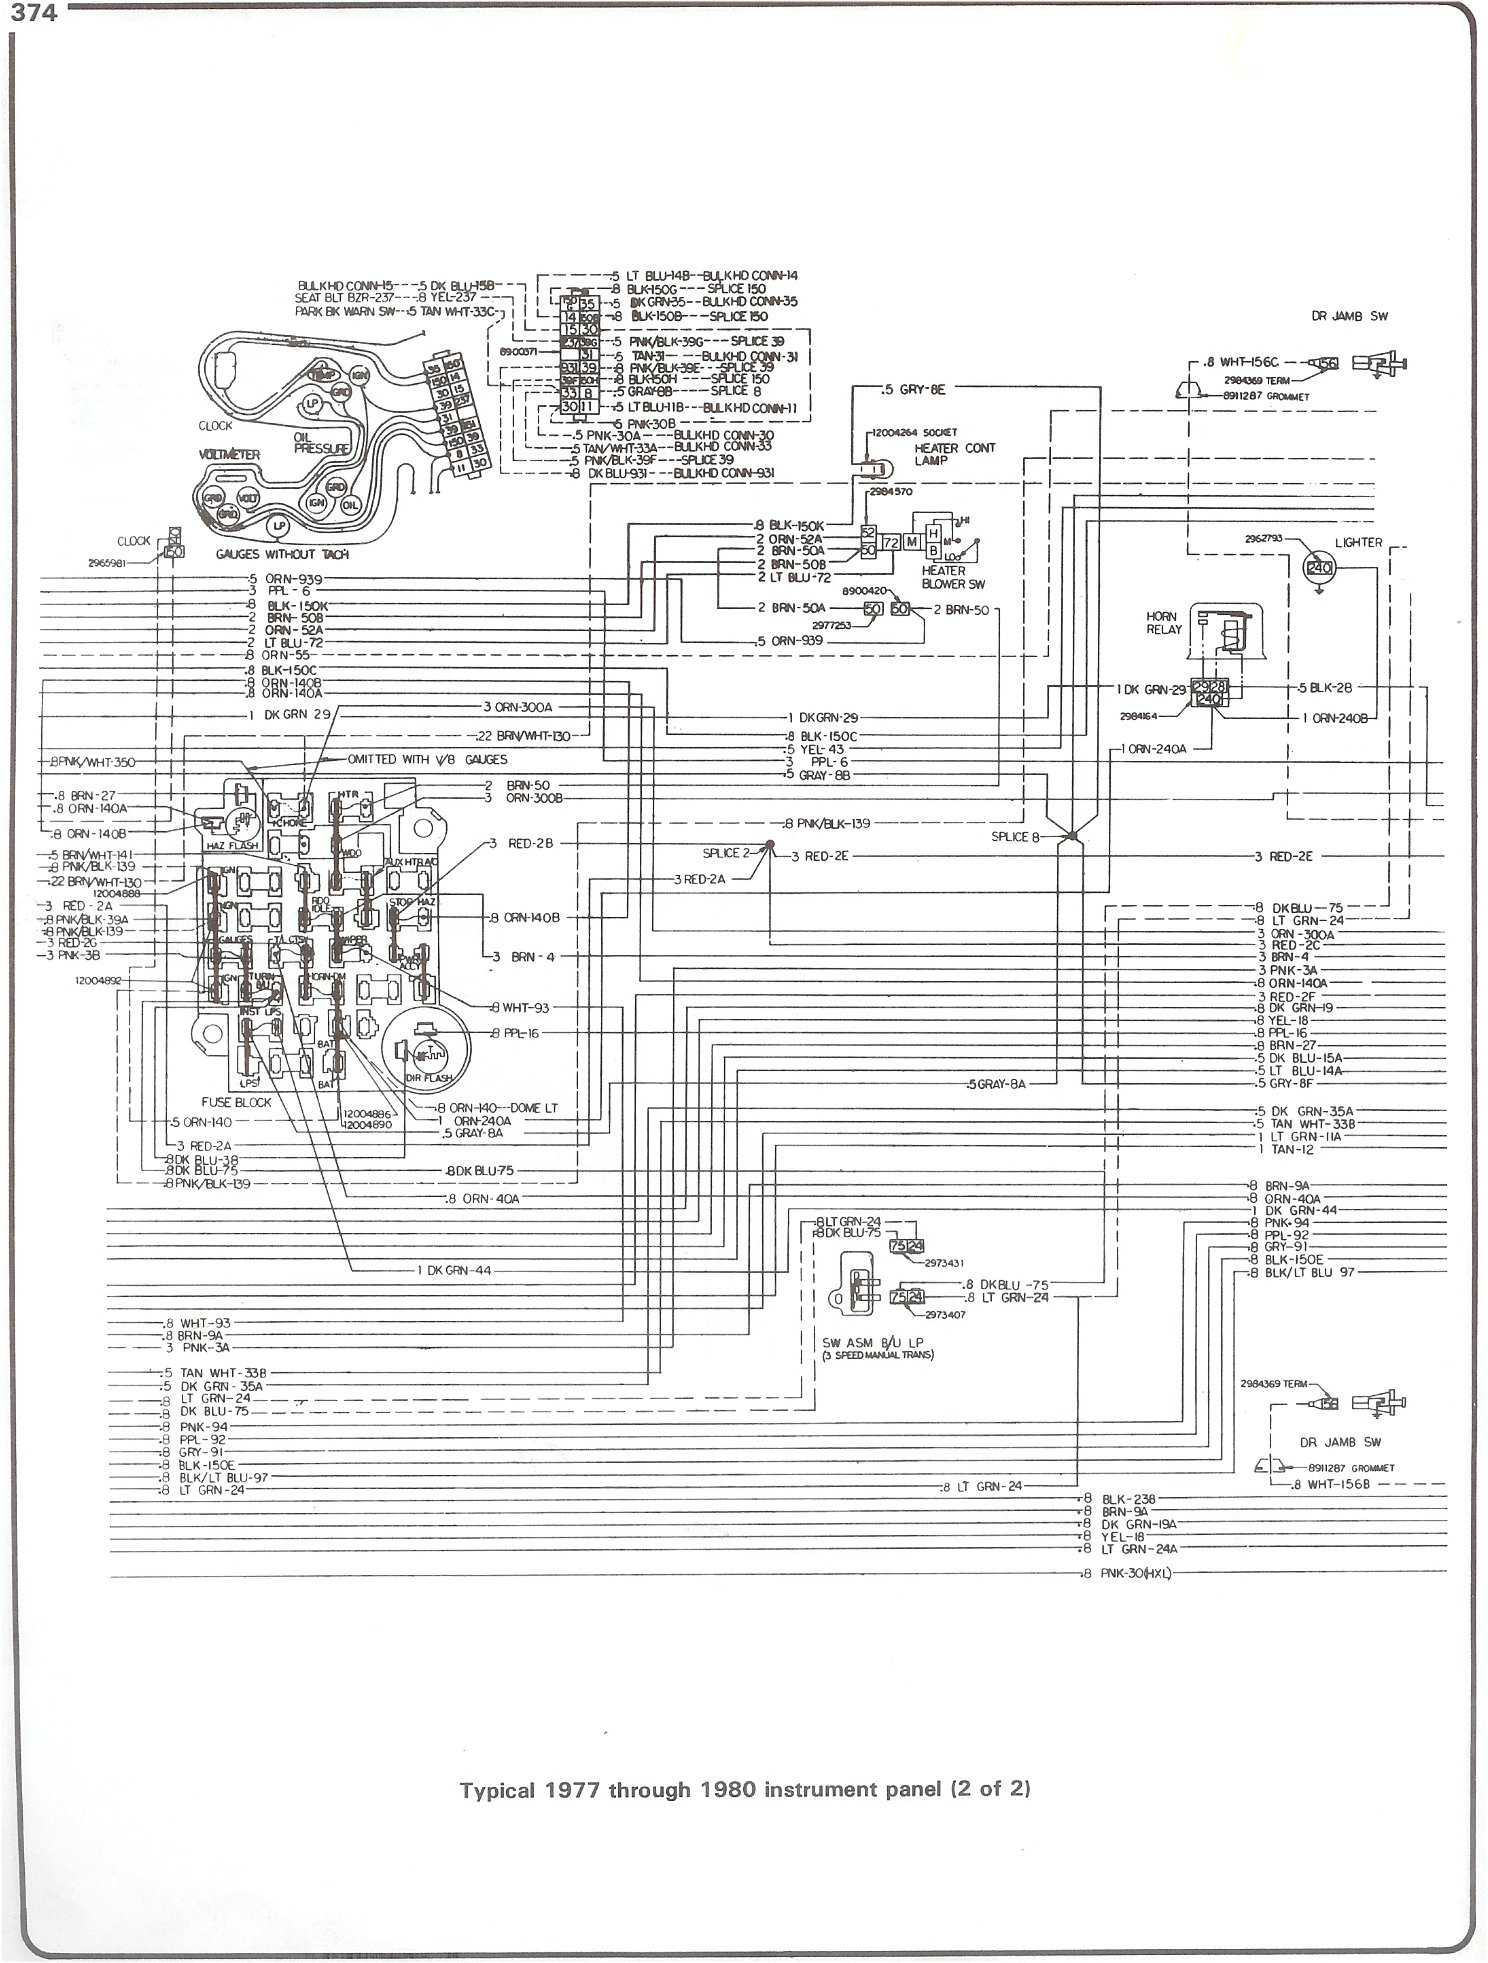 1975 Chevy Wiring Diagram Bookmark About Chevrolet Alternator K 5 Diagrams Rh Casamario De Camaro